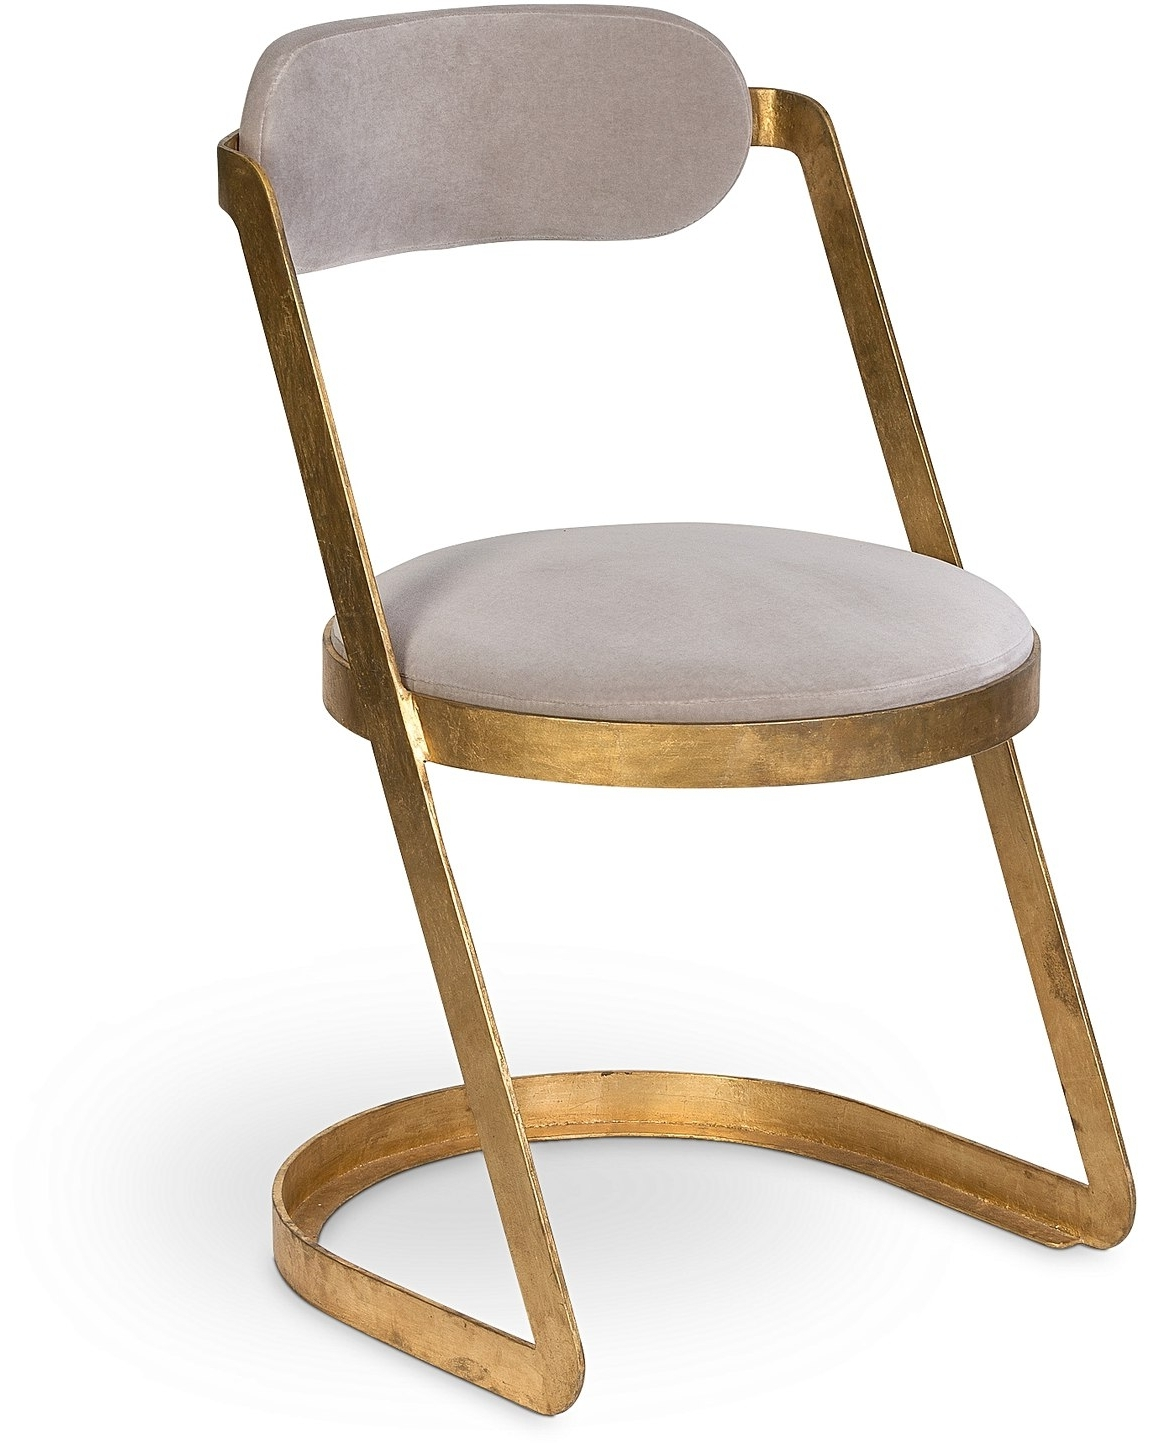 Oliver Side Chairs For Well Known Armchairs & Chairs (Gallery 17 of 20)